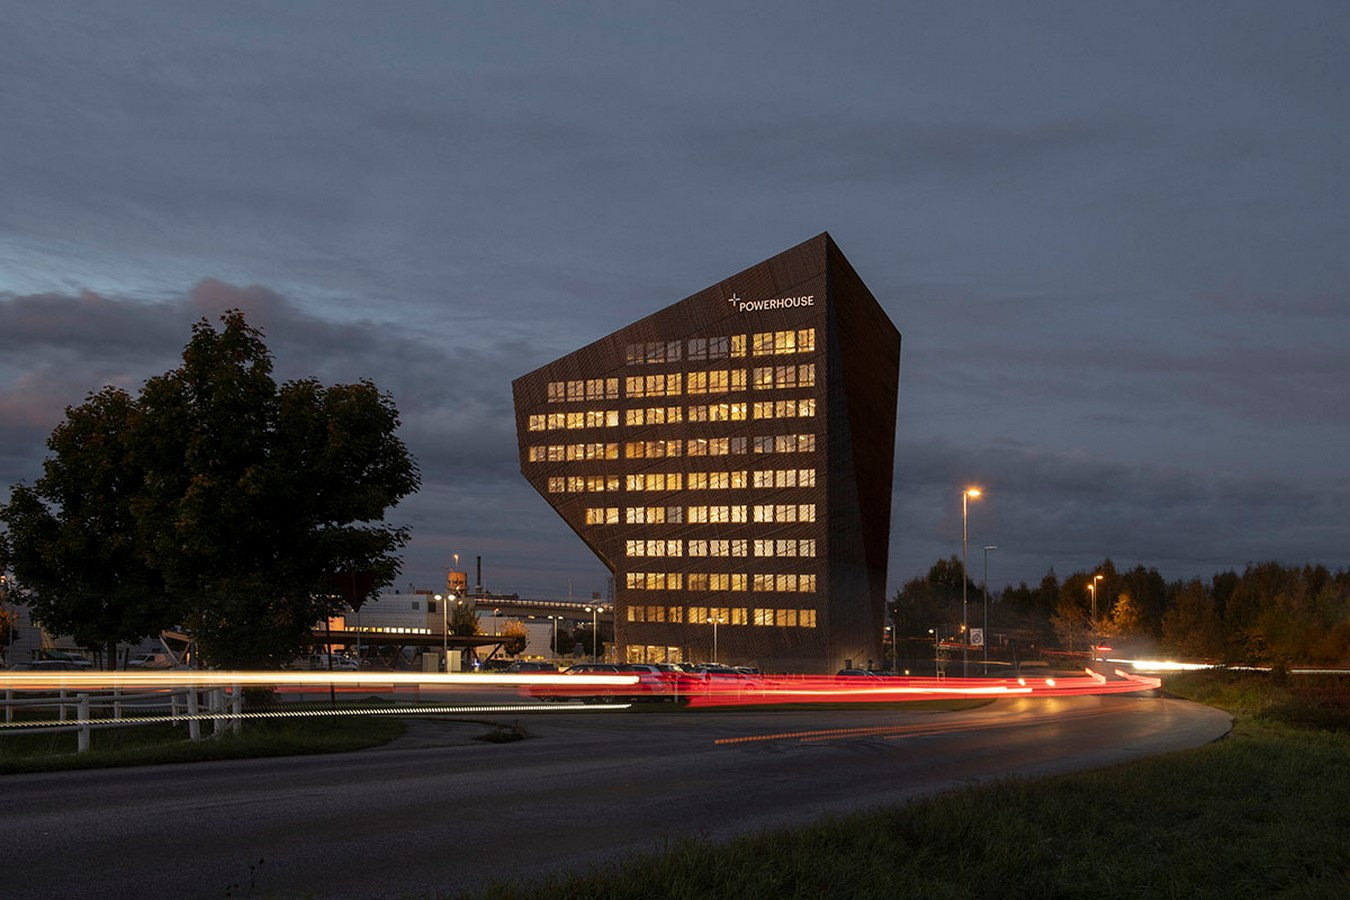 4th Energy Positive Powerhouse In Telemark With Energy Producing Façade And Roof designed by Snøhetta - Sheet3